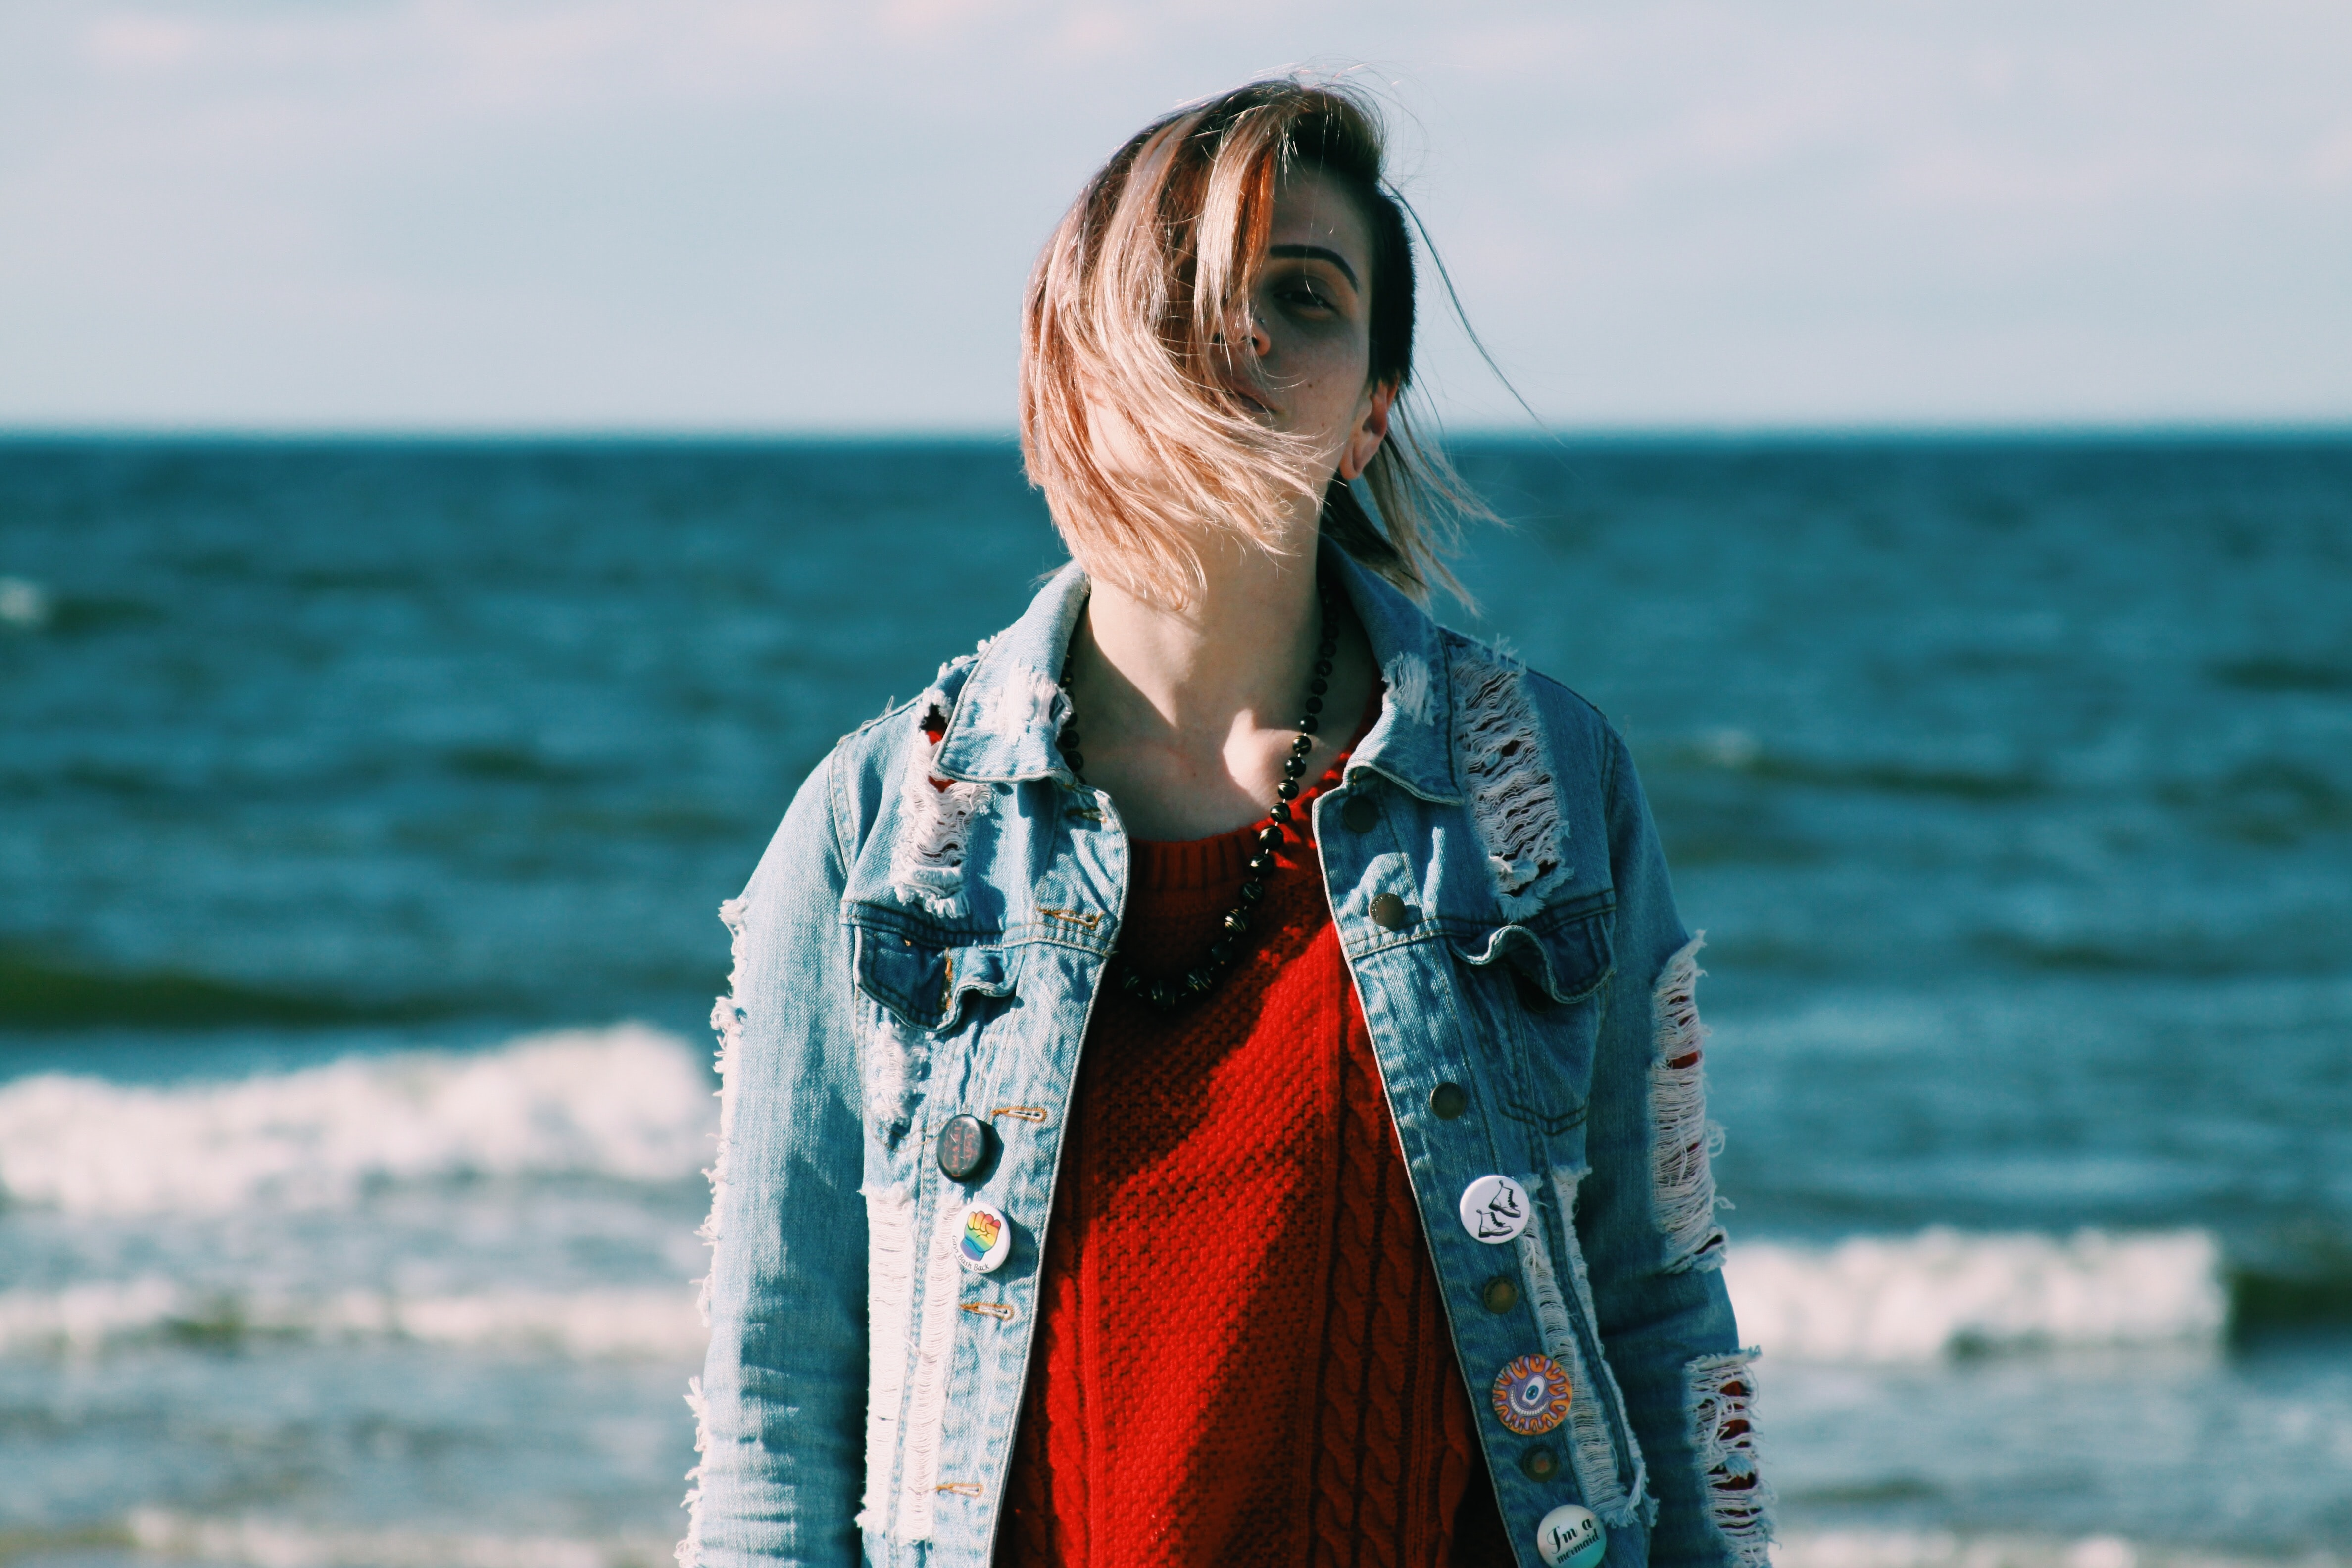 woman wearing blue denim jacket standing near body of water